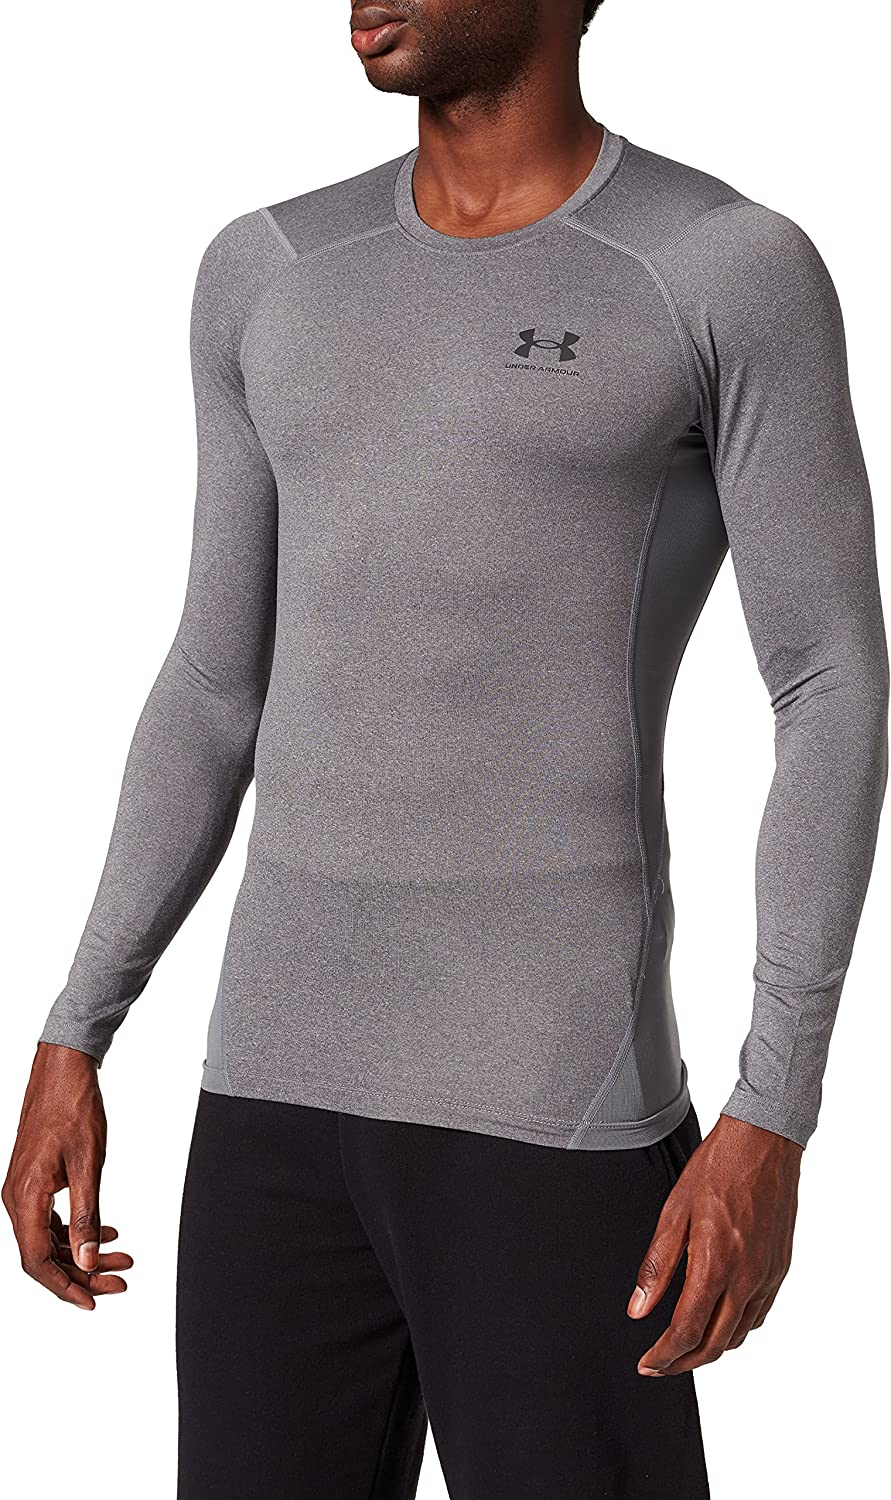 Under Armour Men's HeatGear Rare Compression Long-Sleeve Indianapolis Mall T-Shirt